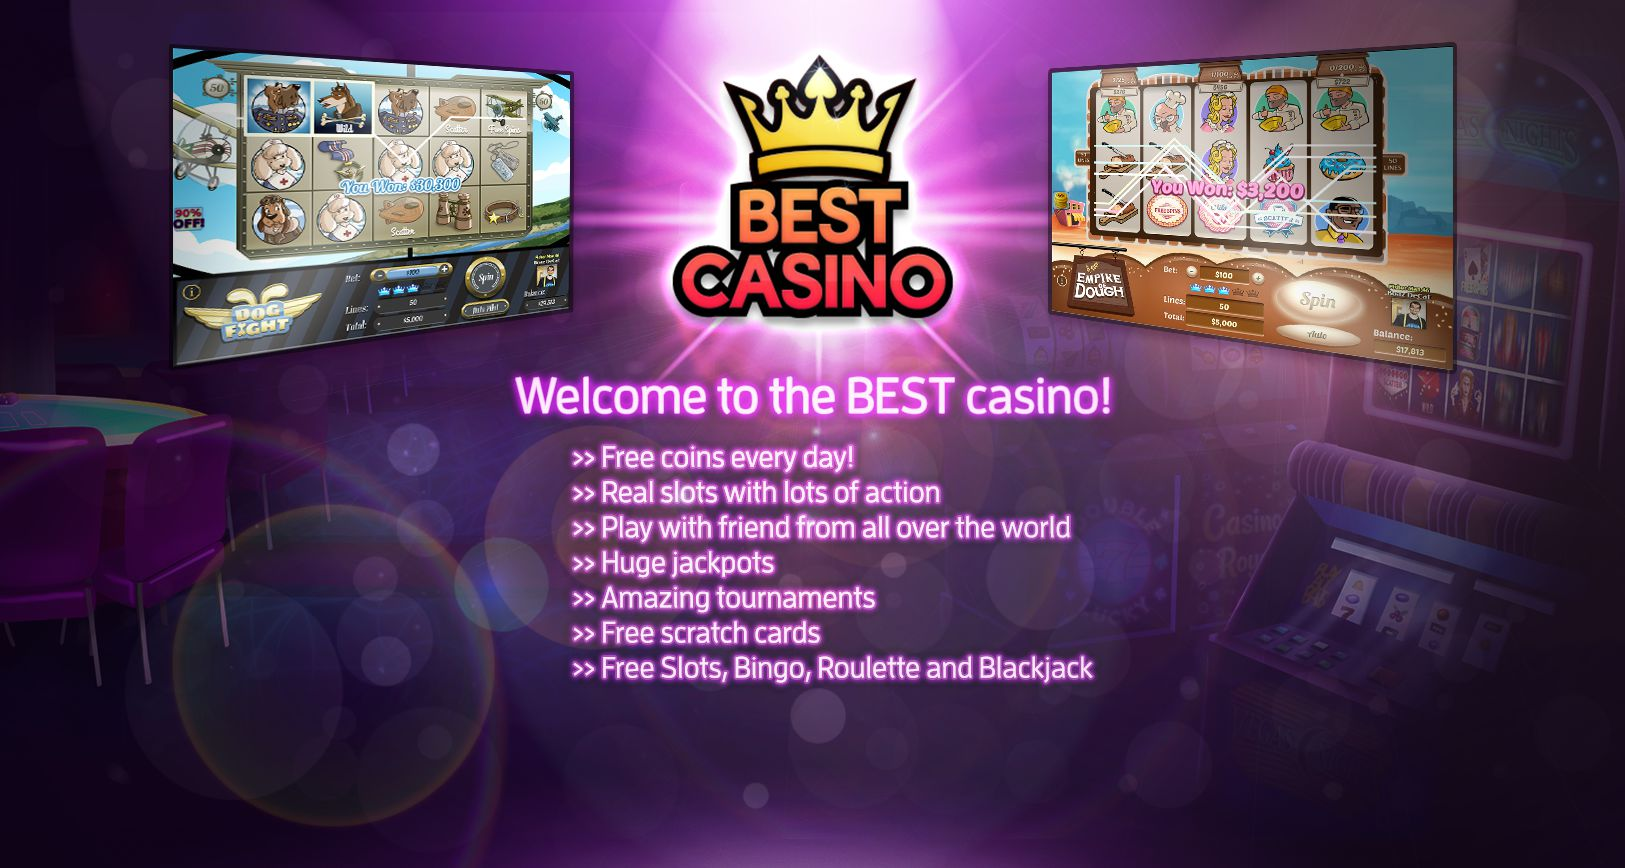 Best casino free slots bingo restaurants casino